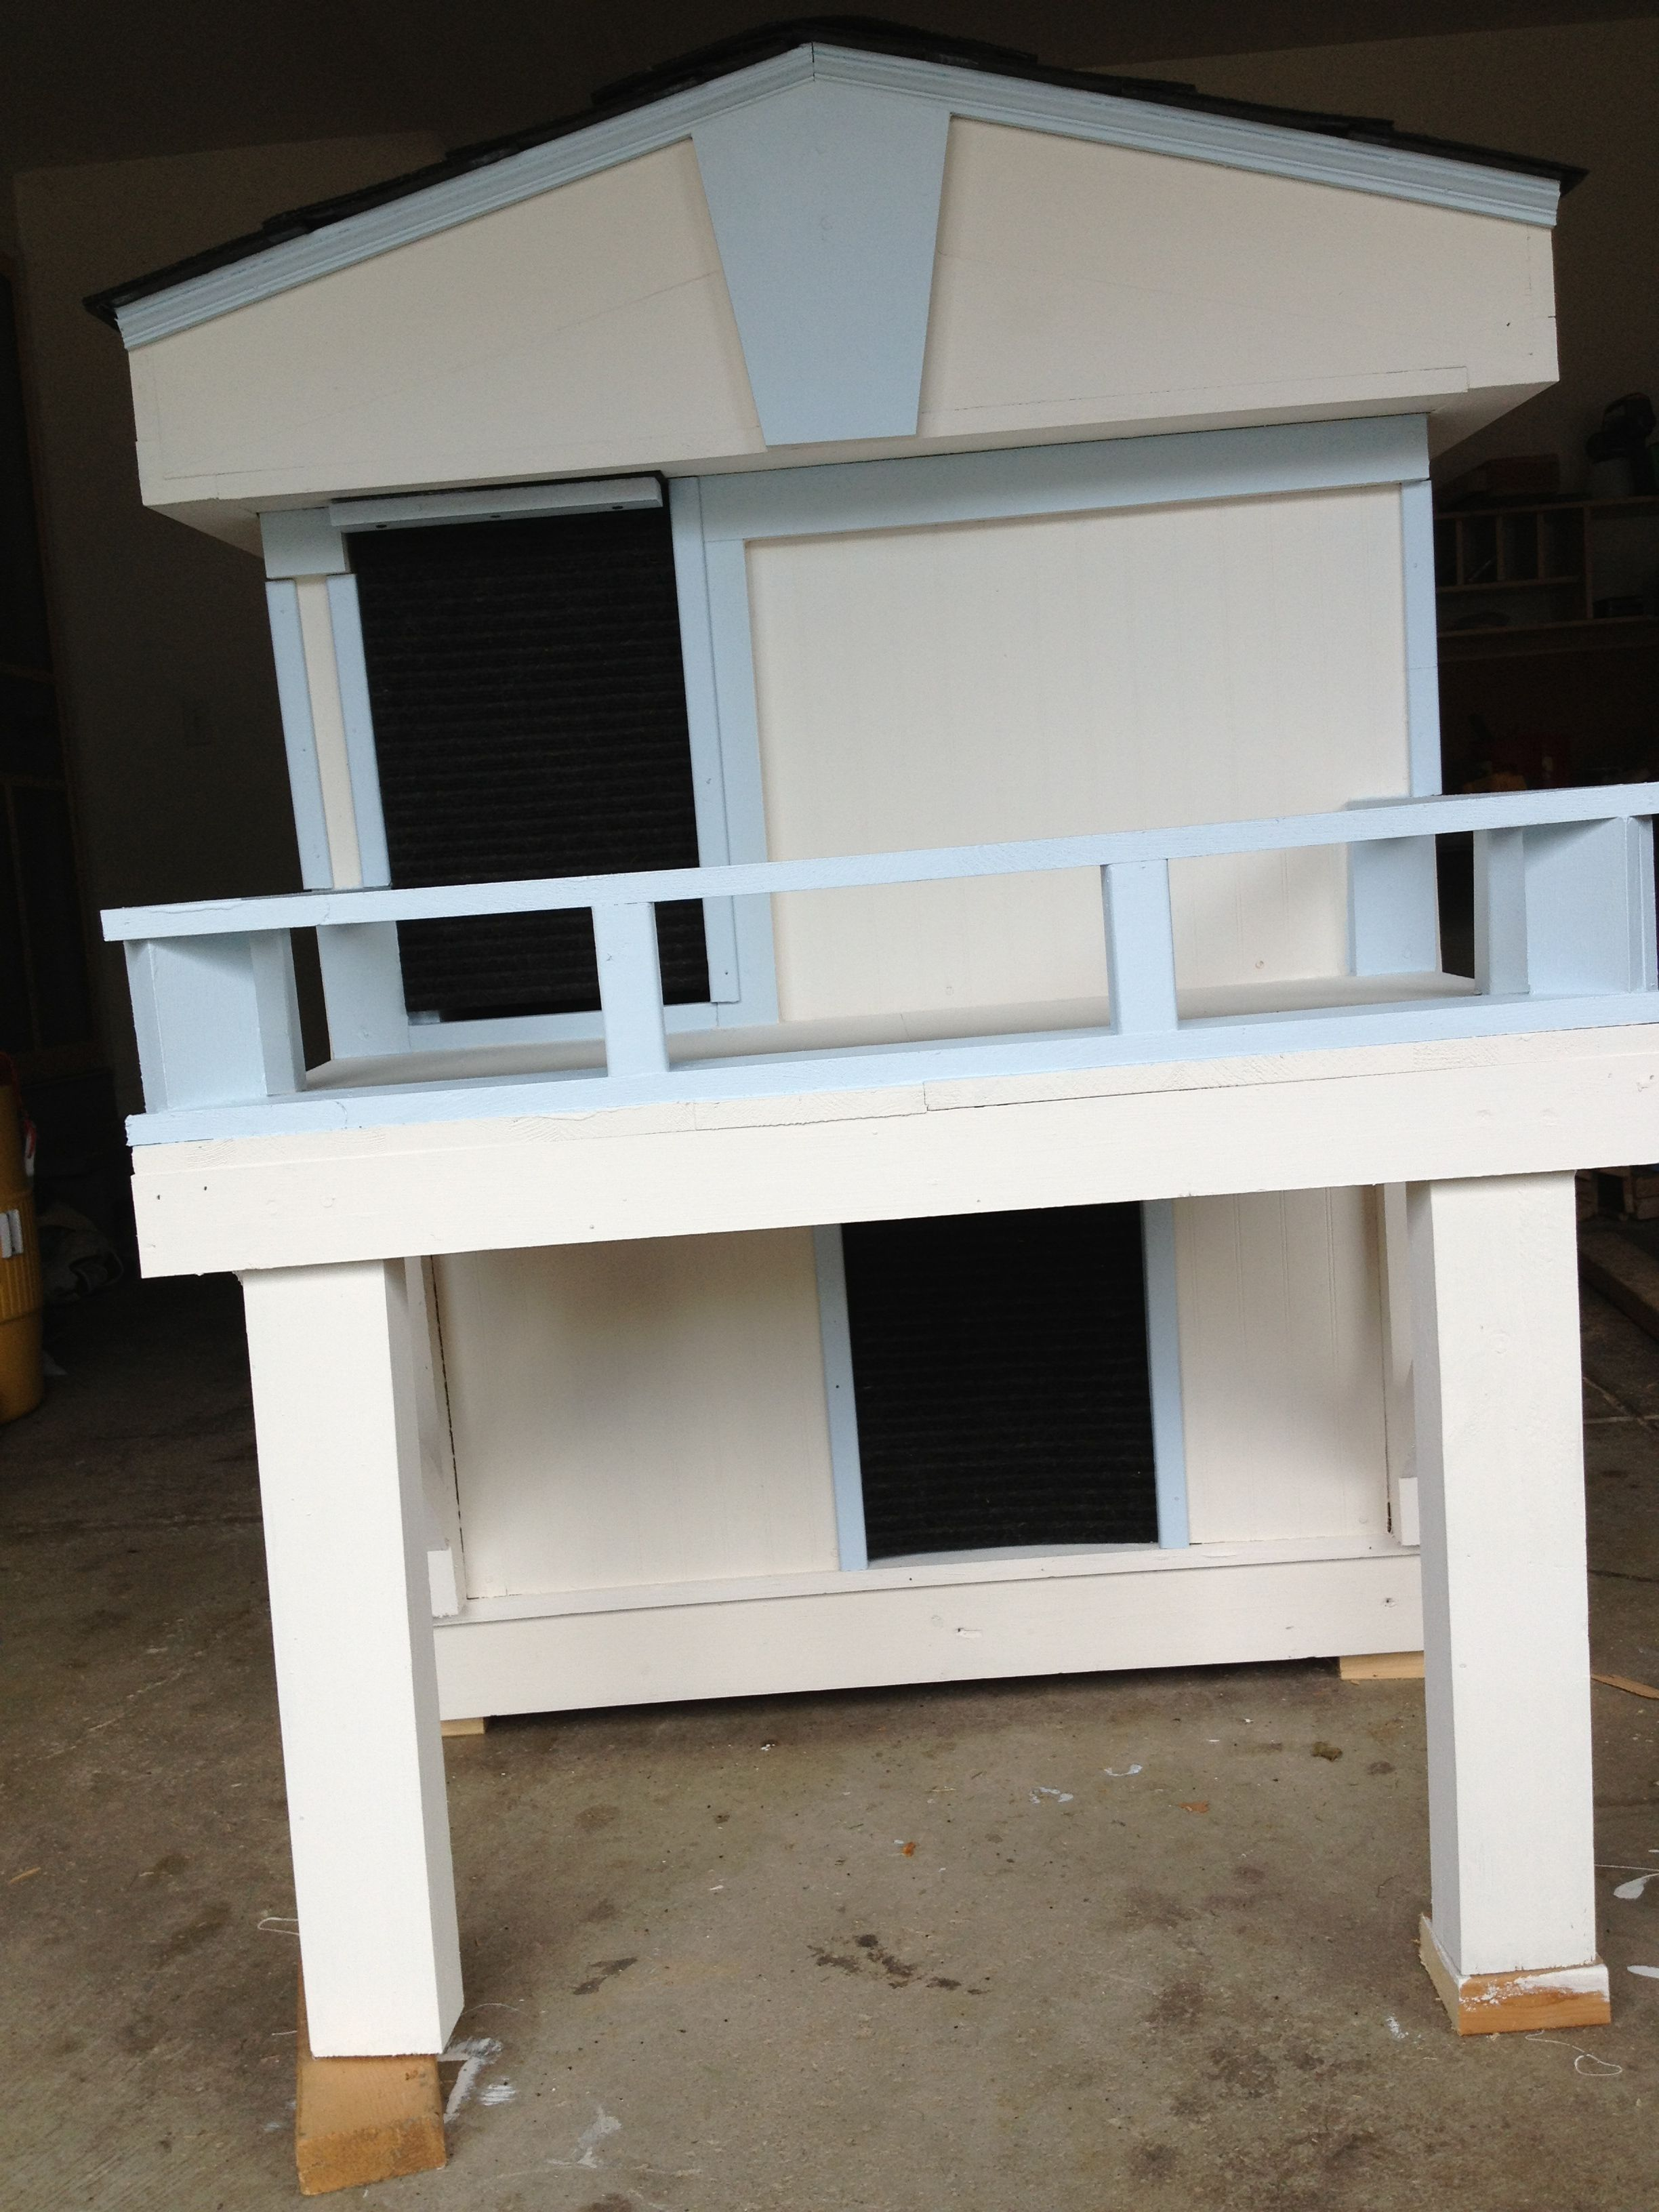 2 Story Dog House With Inside Stairs And Upstairs Balcony Dog